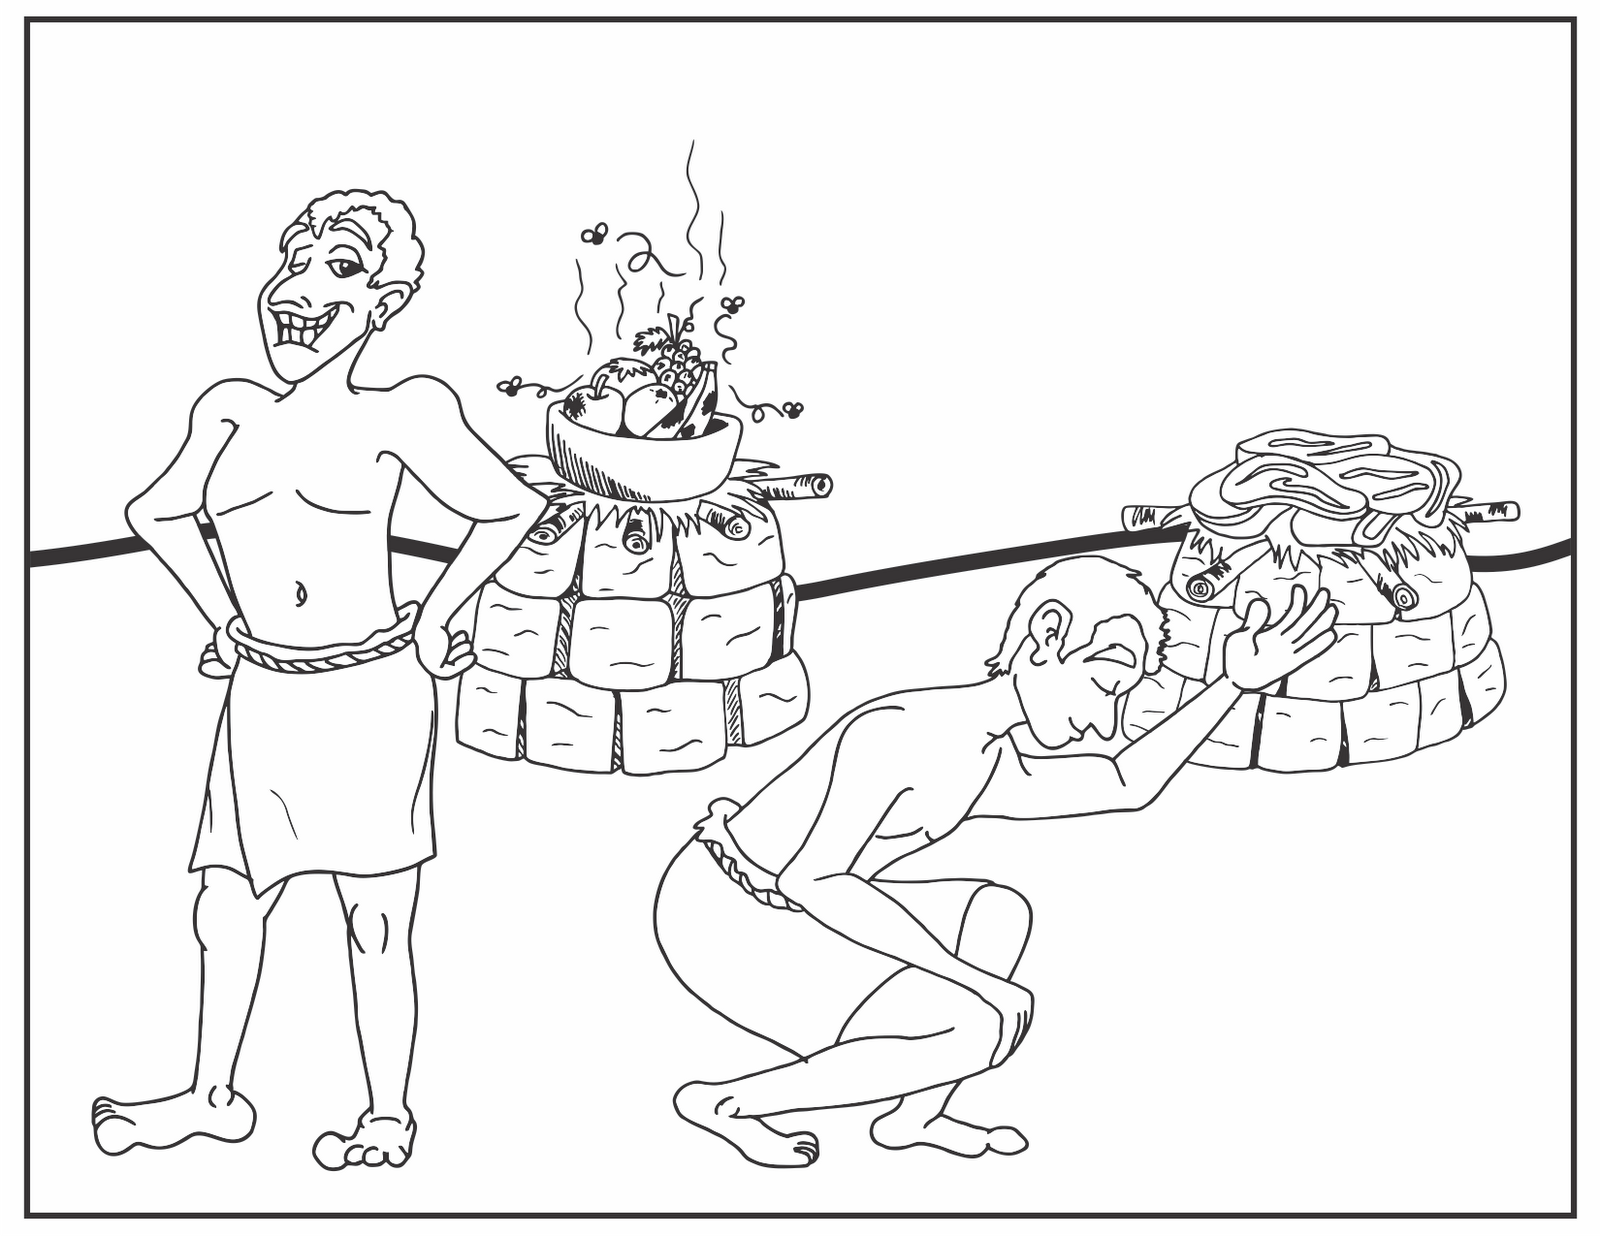 cain and abel coloring pages - photo#15